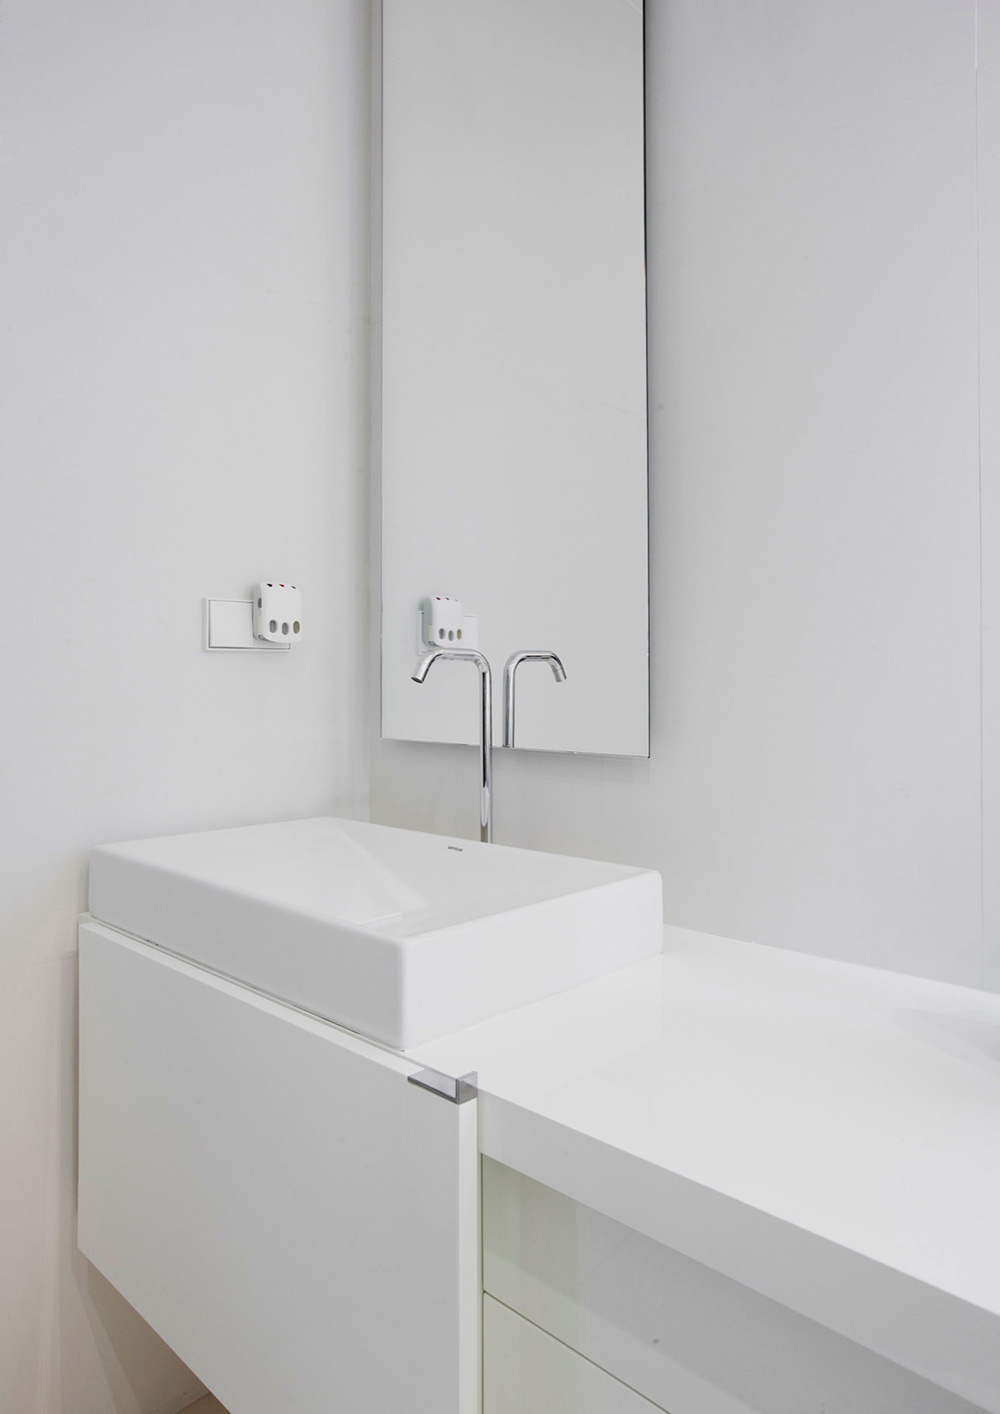 White Bathroom, Sink, Modern Apartment in Madrid Designed by IlmioDesign